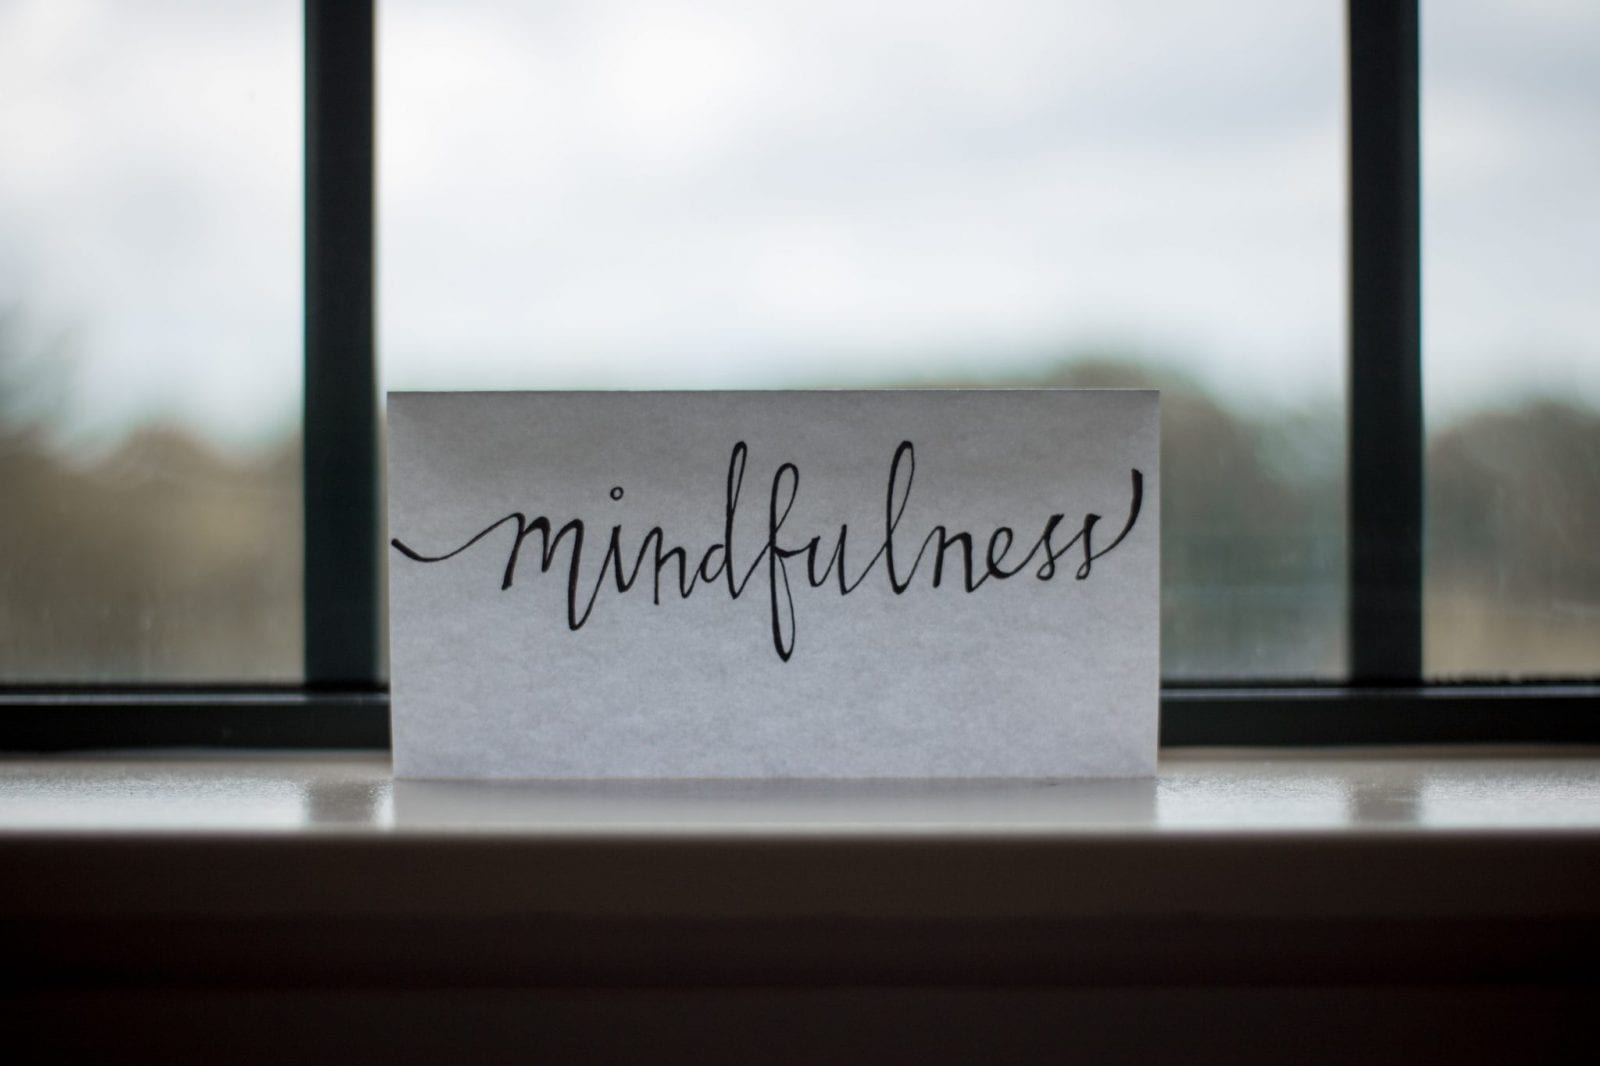 cursive writing the word mindfulness on a white placecard on the window sill